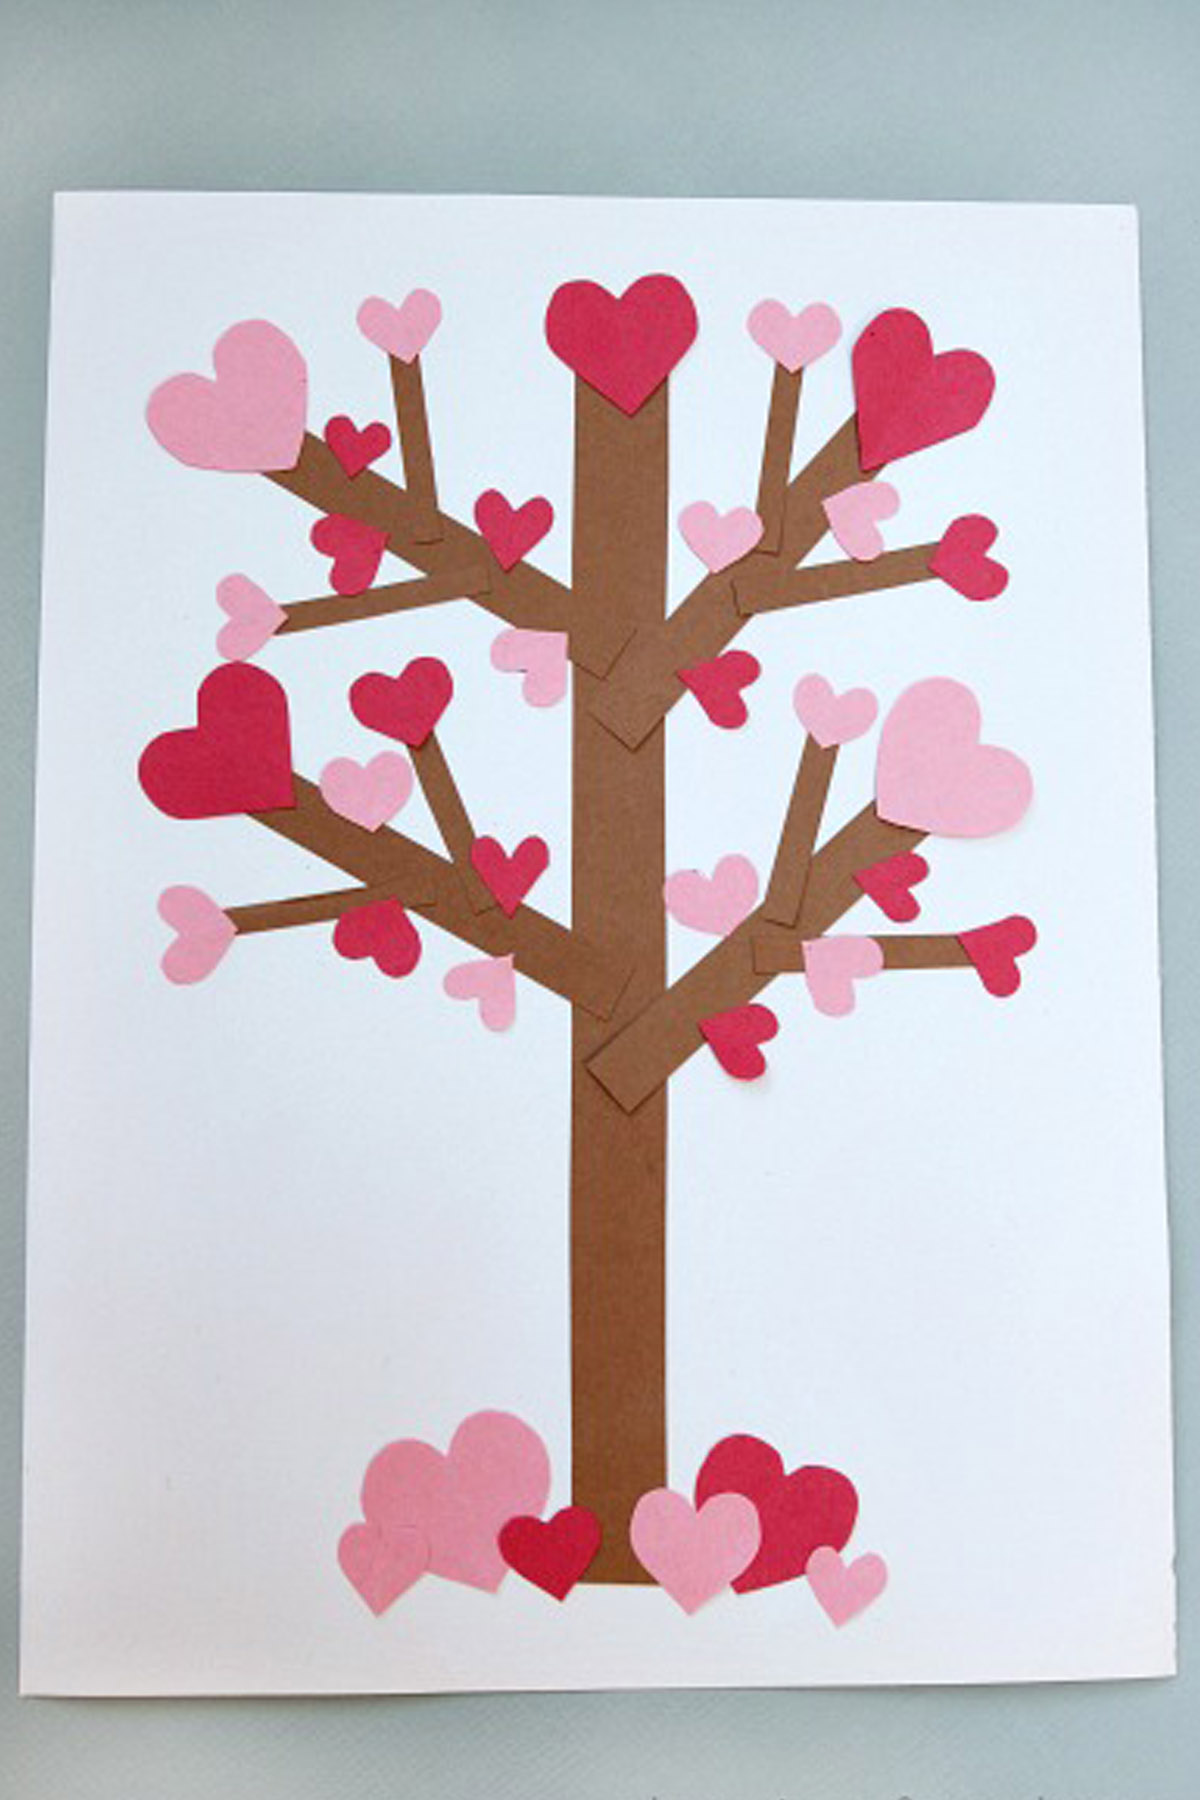 20 valentine 39 s day crafts for kids fun heart arts and for Arts and crafts for valentine day